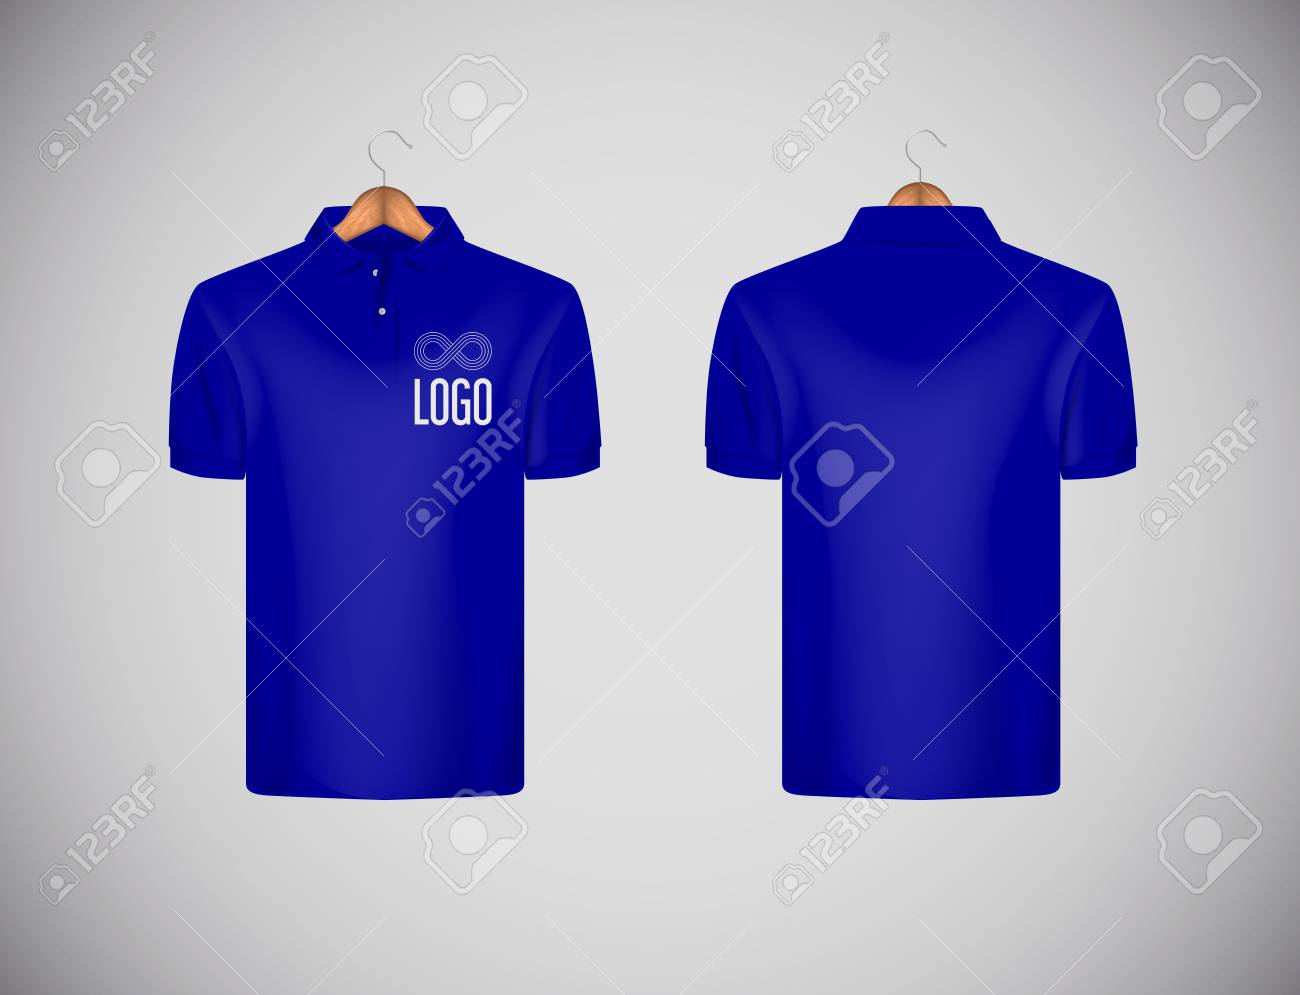 Men's slim-fitting short sleeve polo shirt with logo for advertising. Blue polo shirt with wooden hanger isolated mock-up design template for branding. - 117663495